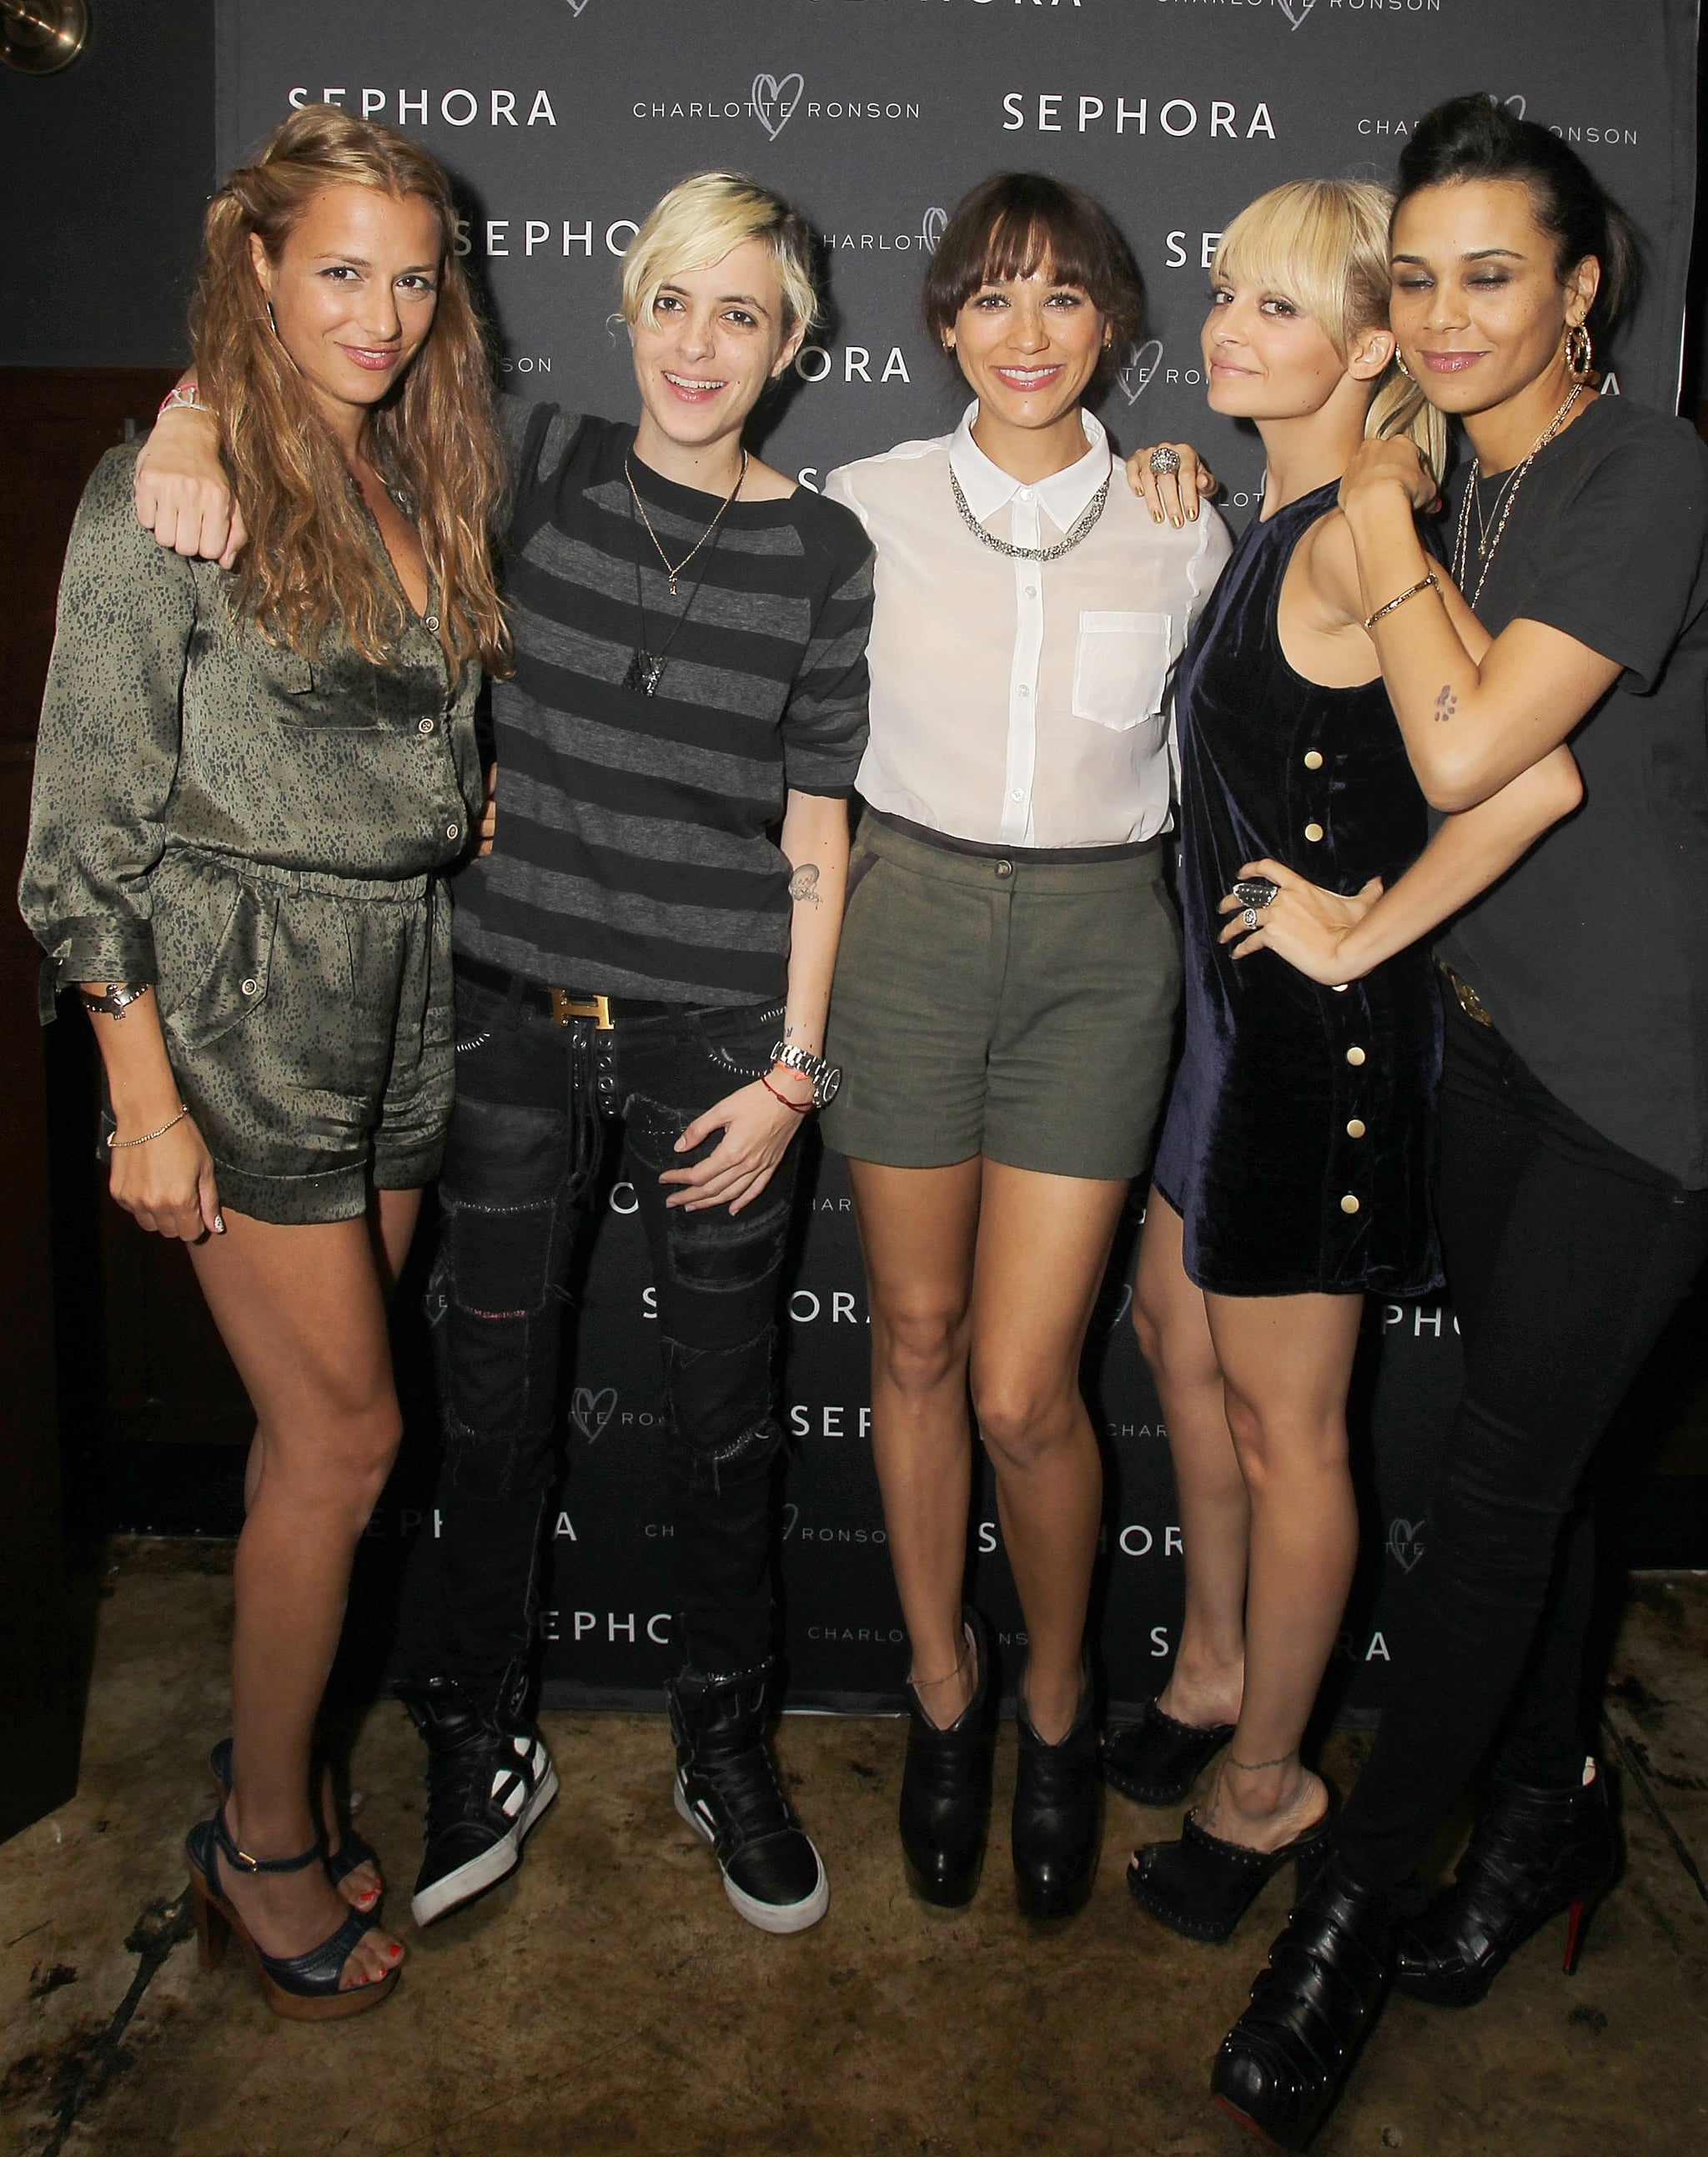 Charlotte Ronson had the support of longtime close friends.